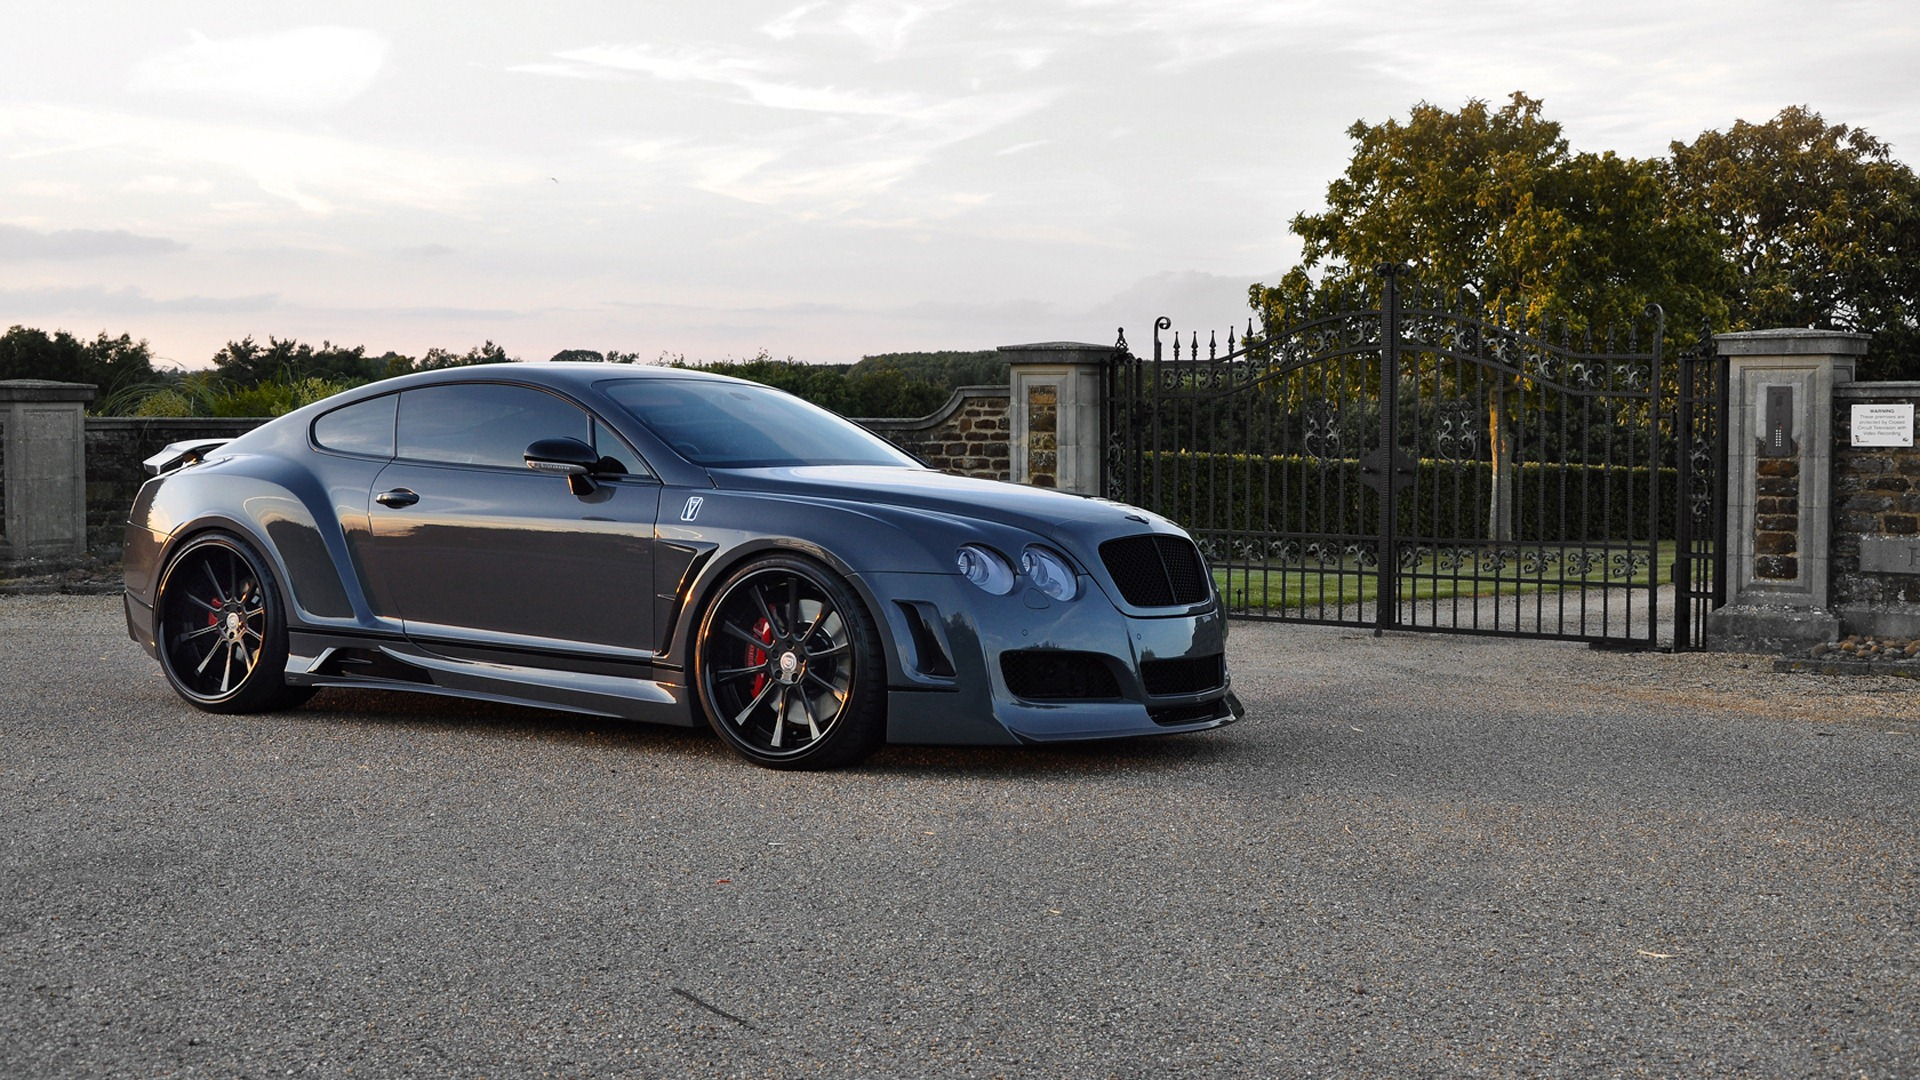 Gorgeous Bentley Continental Wallpaper 44042 1920x1080 Px